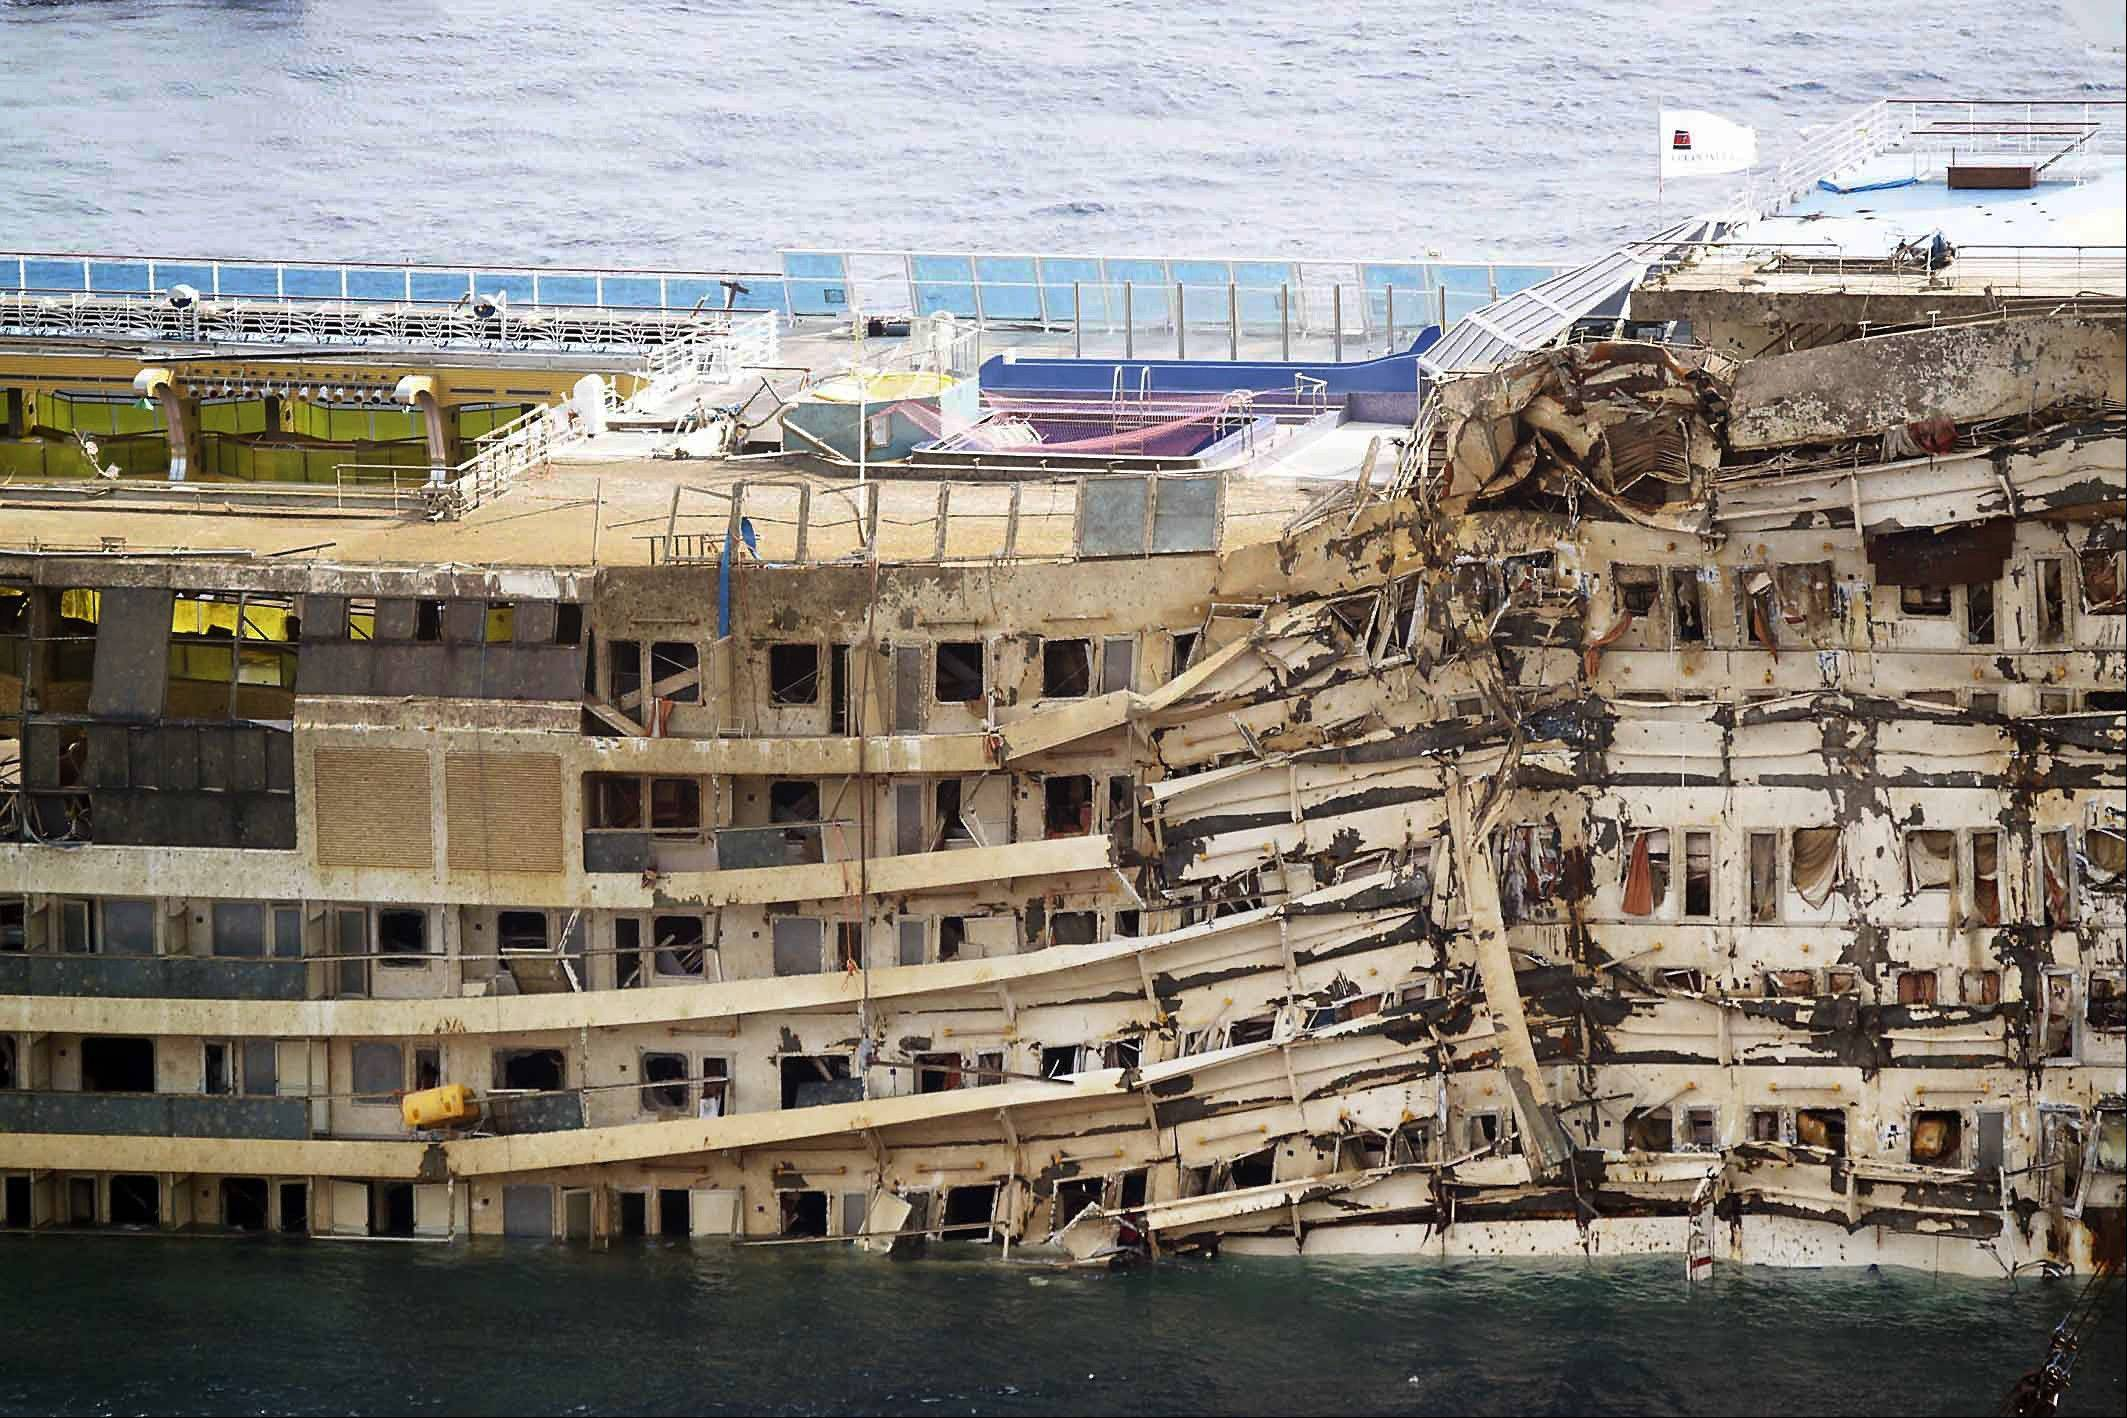 "The Costa Concordia is seen after it was lifted upright, on the Tuscan Island of Giglio, Italy, Tuesday, Sept. 17, 2013. The crippled cruise ship was pulled completely upright early Tuesday after a complicated, 19-hour operation to wrench it from its side where it capsized last year off Tuscany, with officials declaring it a ""perfect"" end to a daring and unprecedented engineering feat."